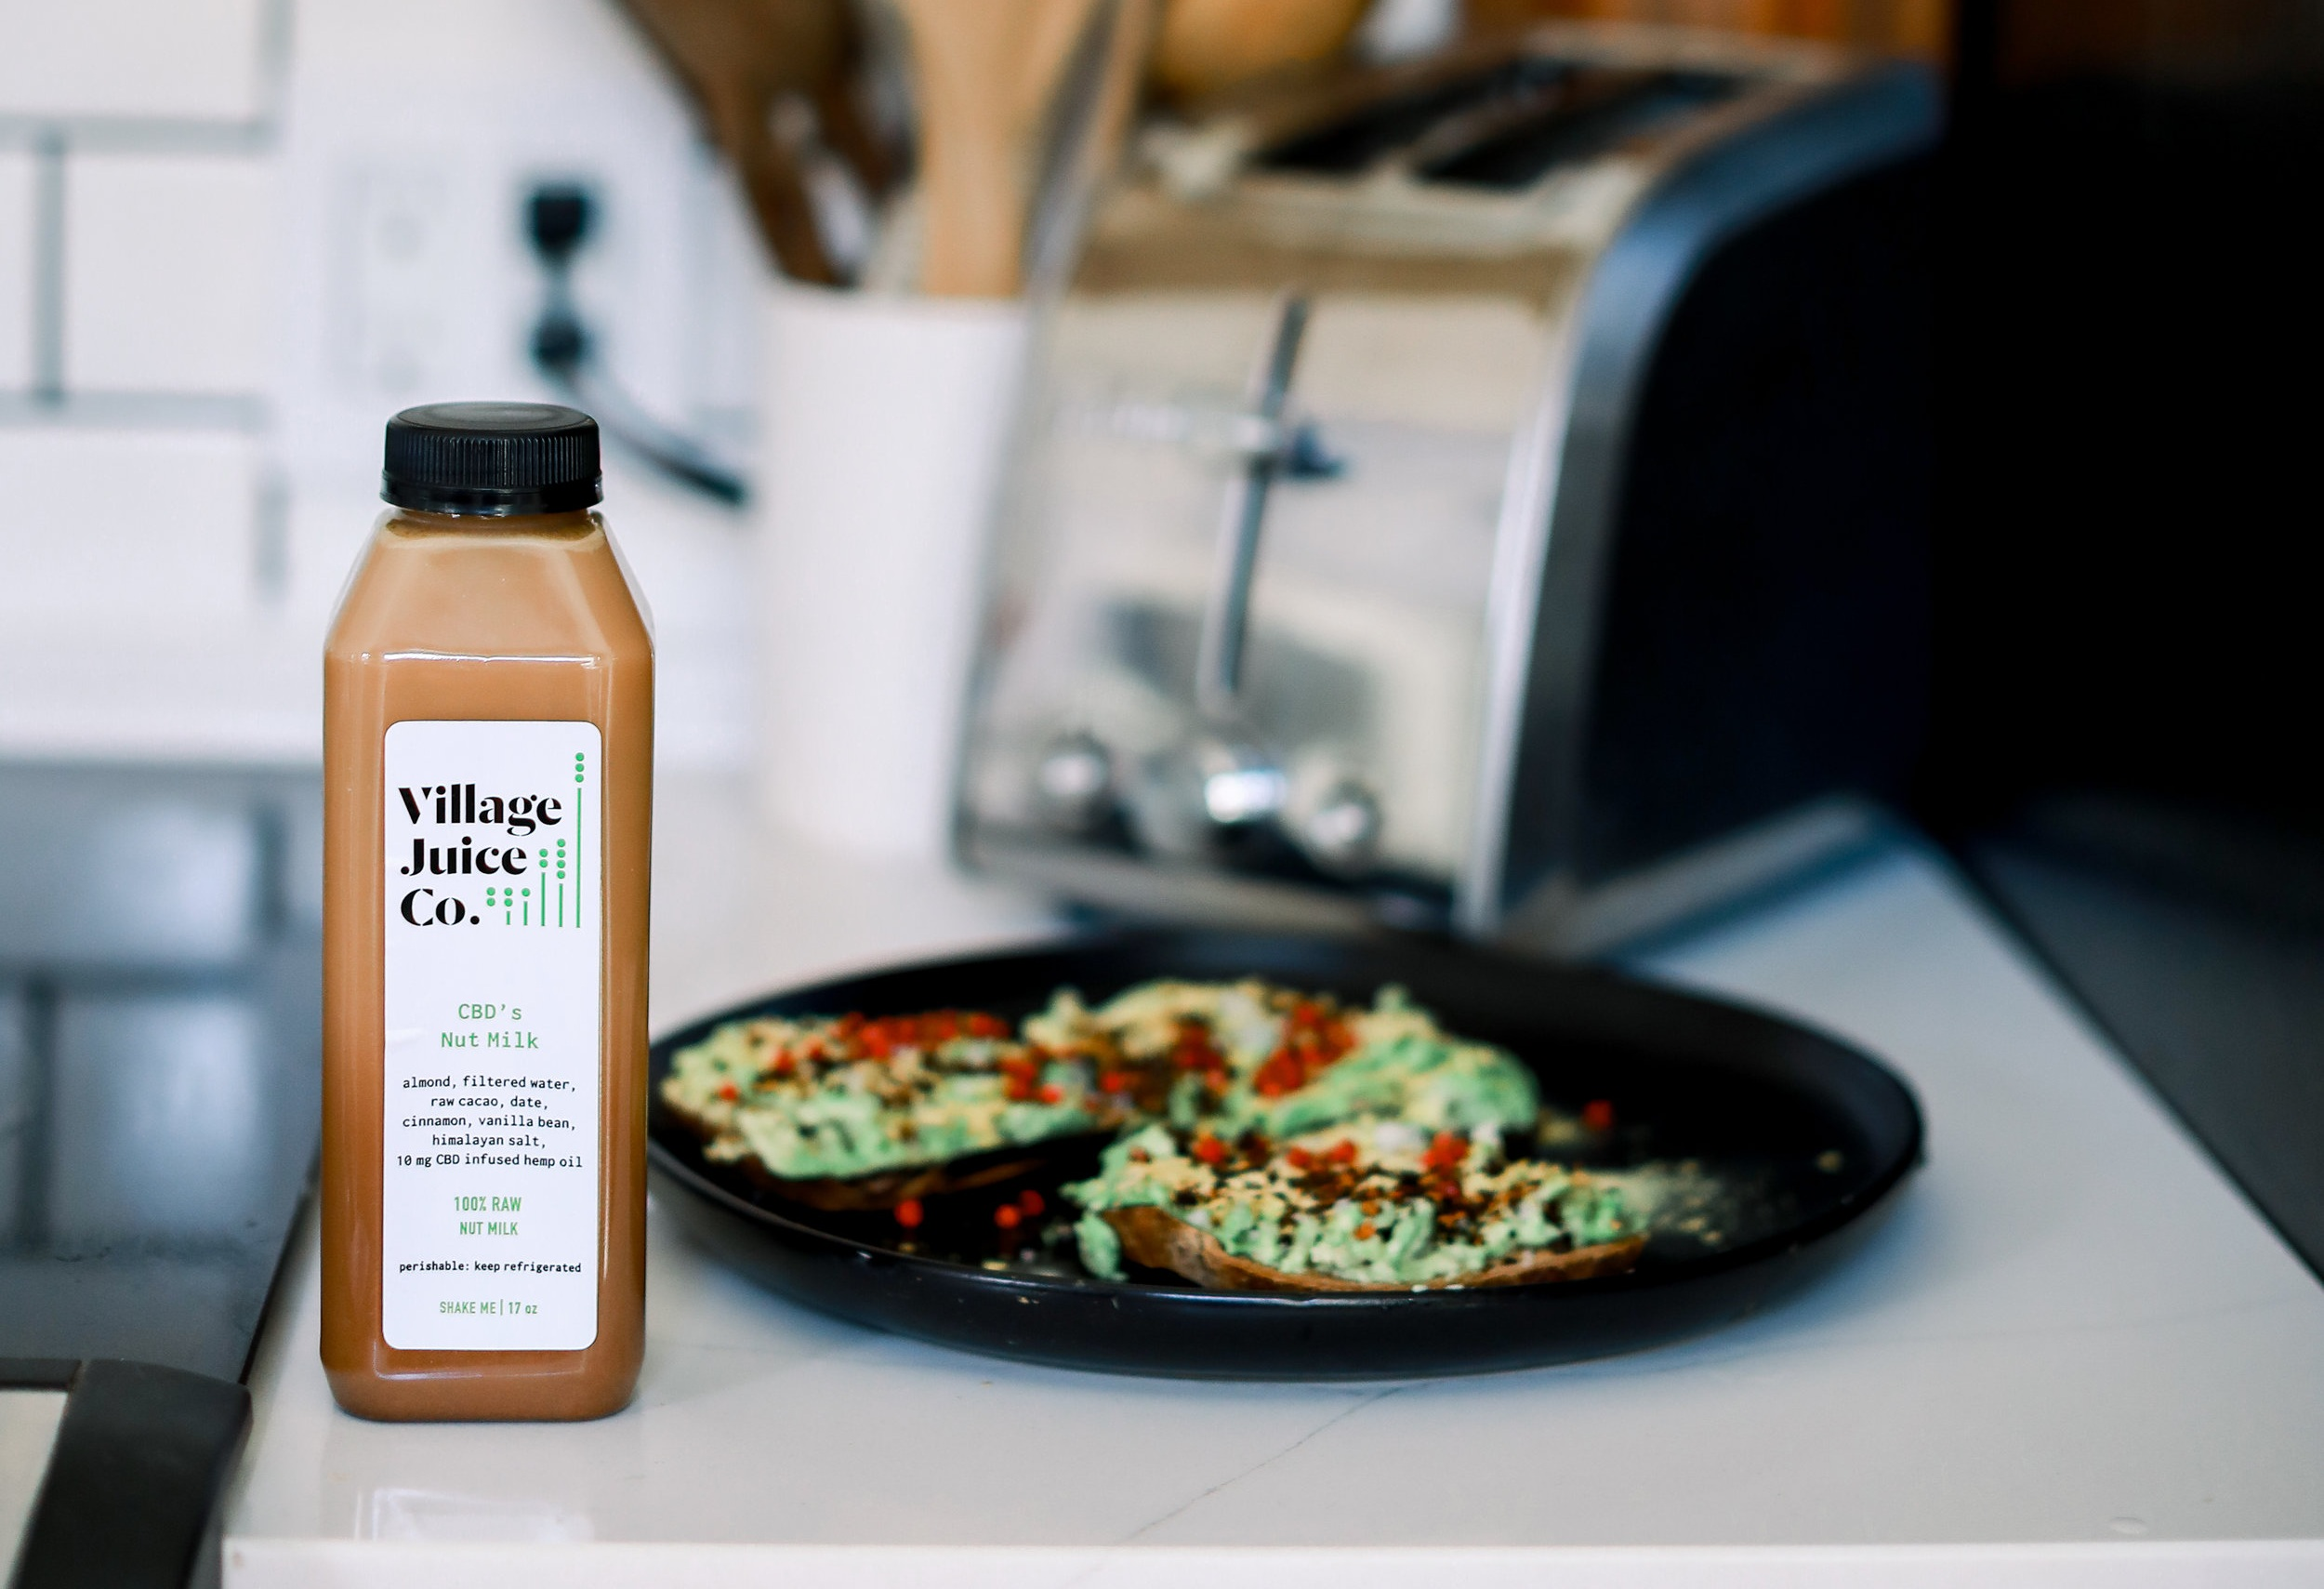 Some  CBD Nut Milk  and avocado toast - name a better duo 😏   Photo: Lindley Battle Photography